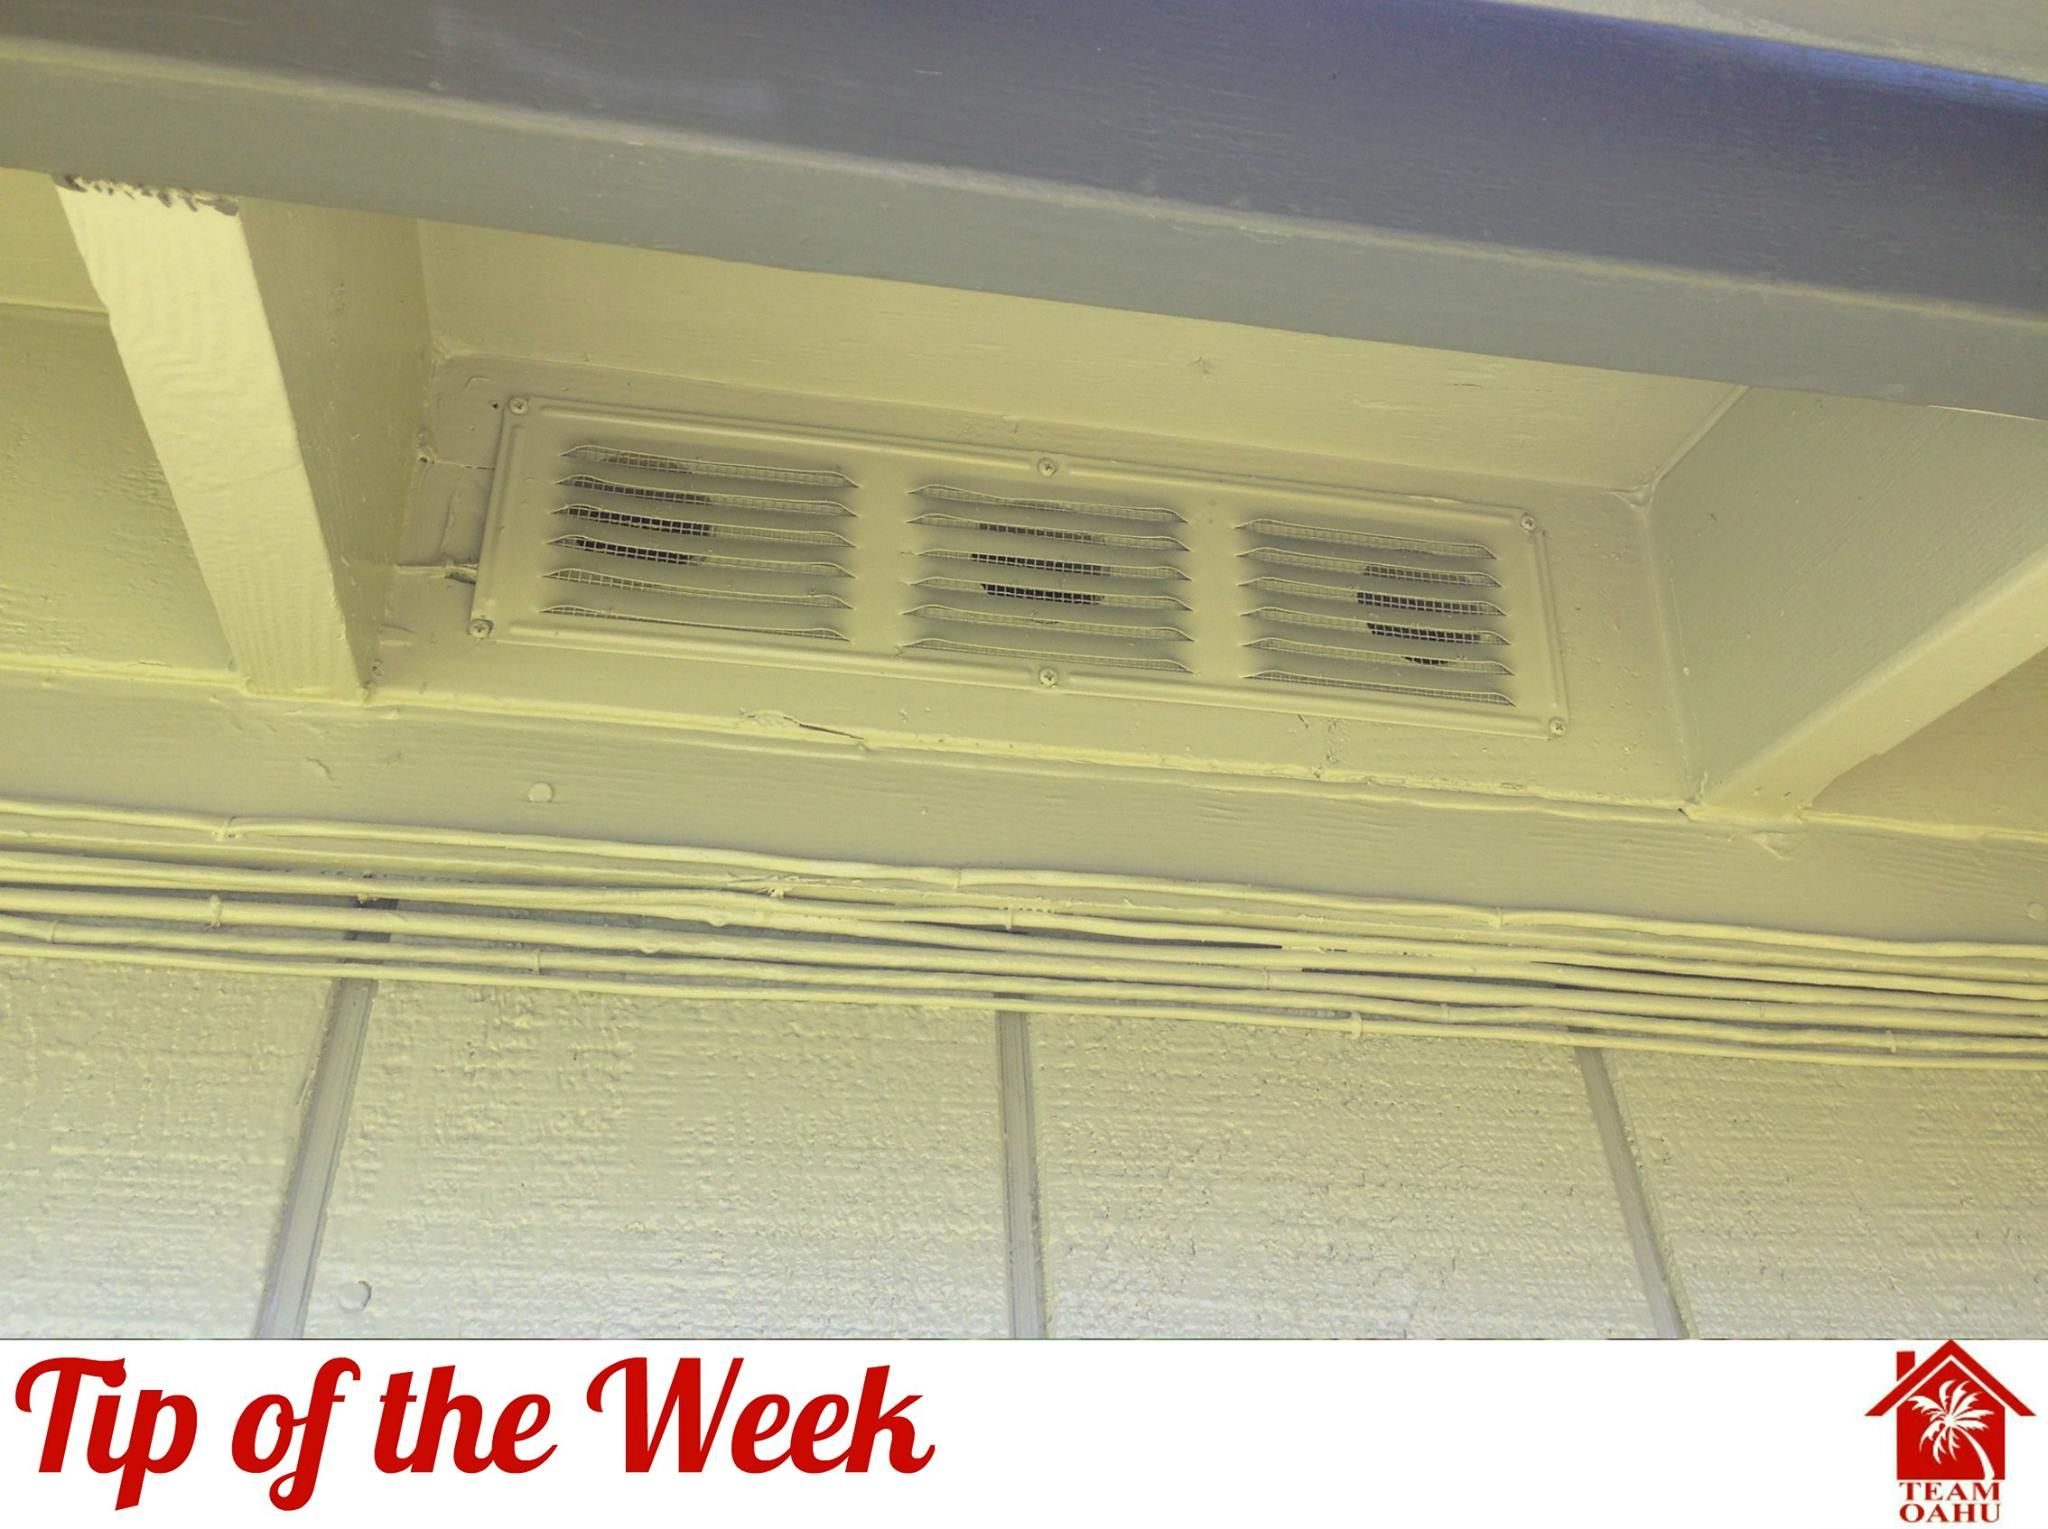 Make Sure To Check The Vents Around Your Home To Ensure Birds Are Not Entering Your Attic And Bringing In Nesting Material Home Appliances Home Tips